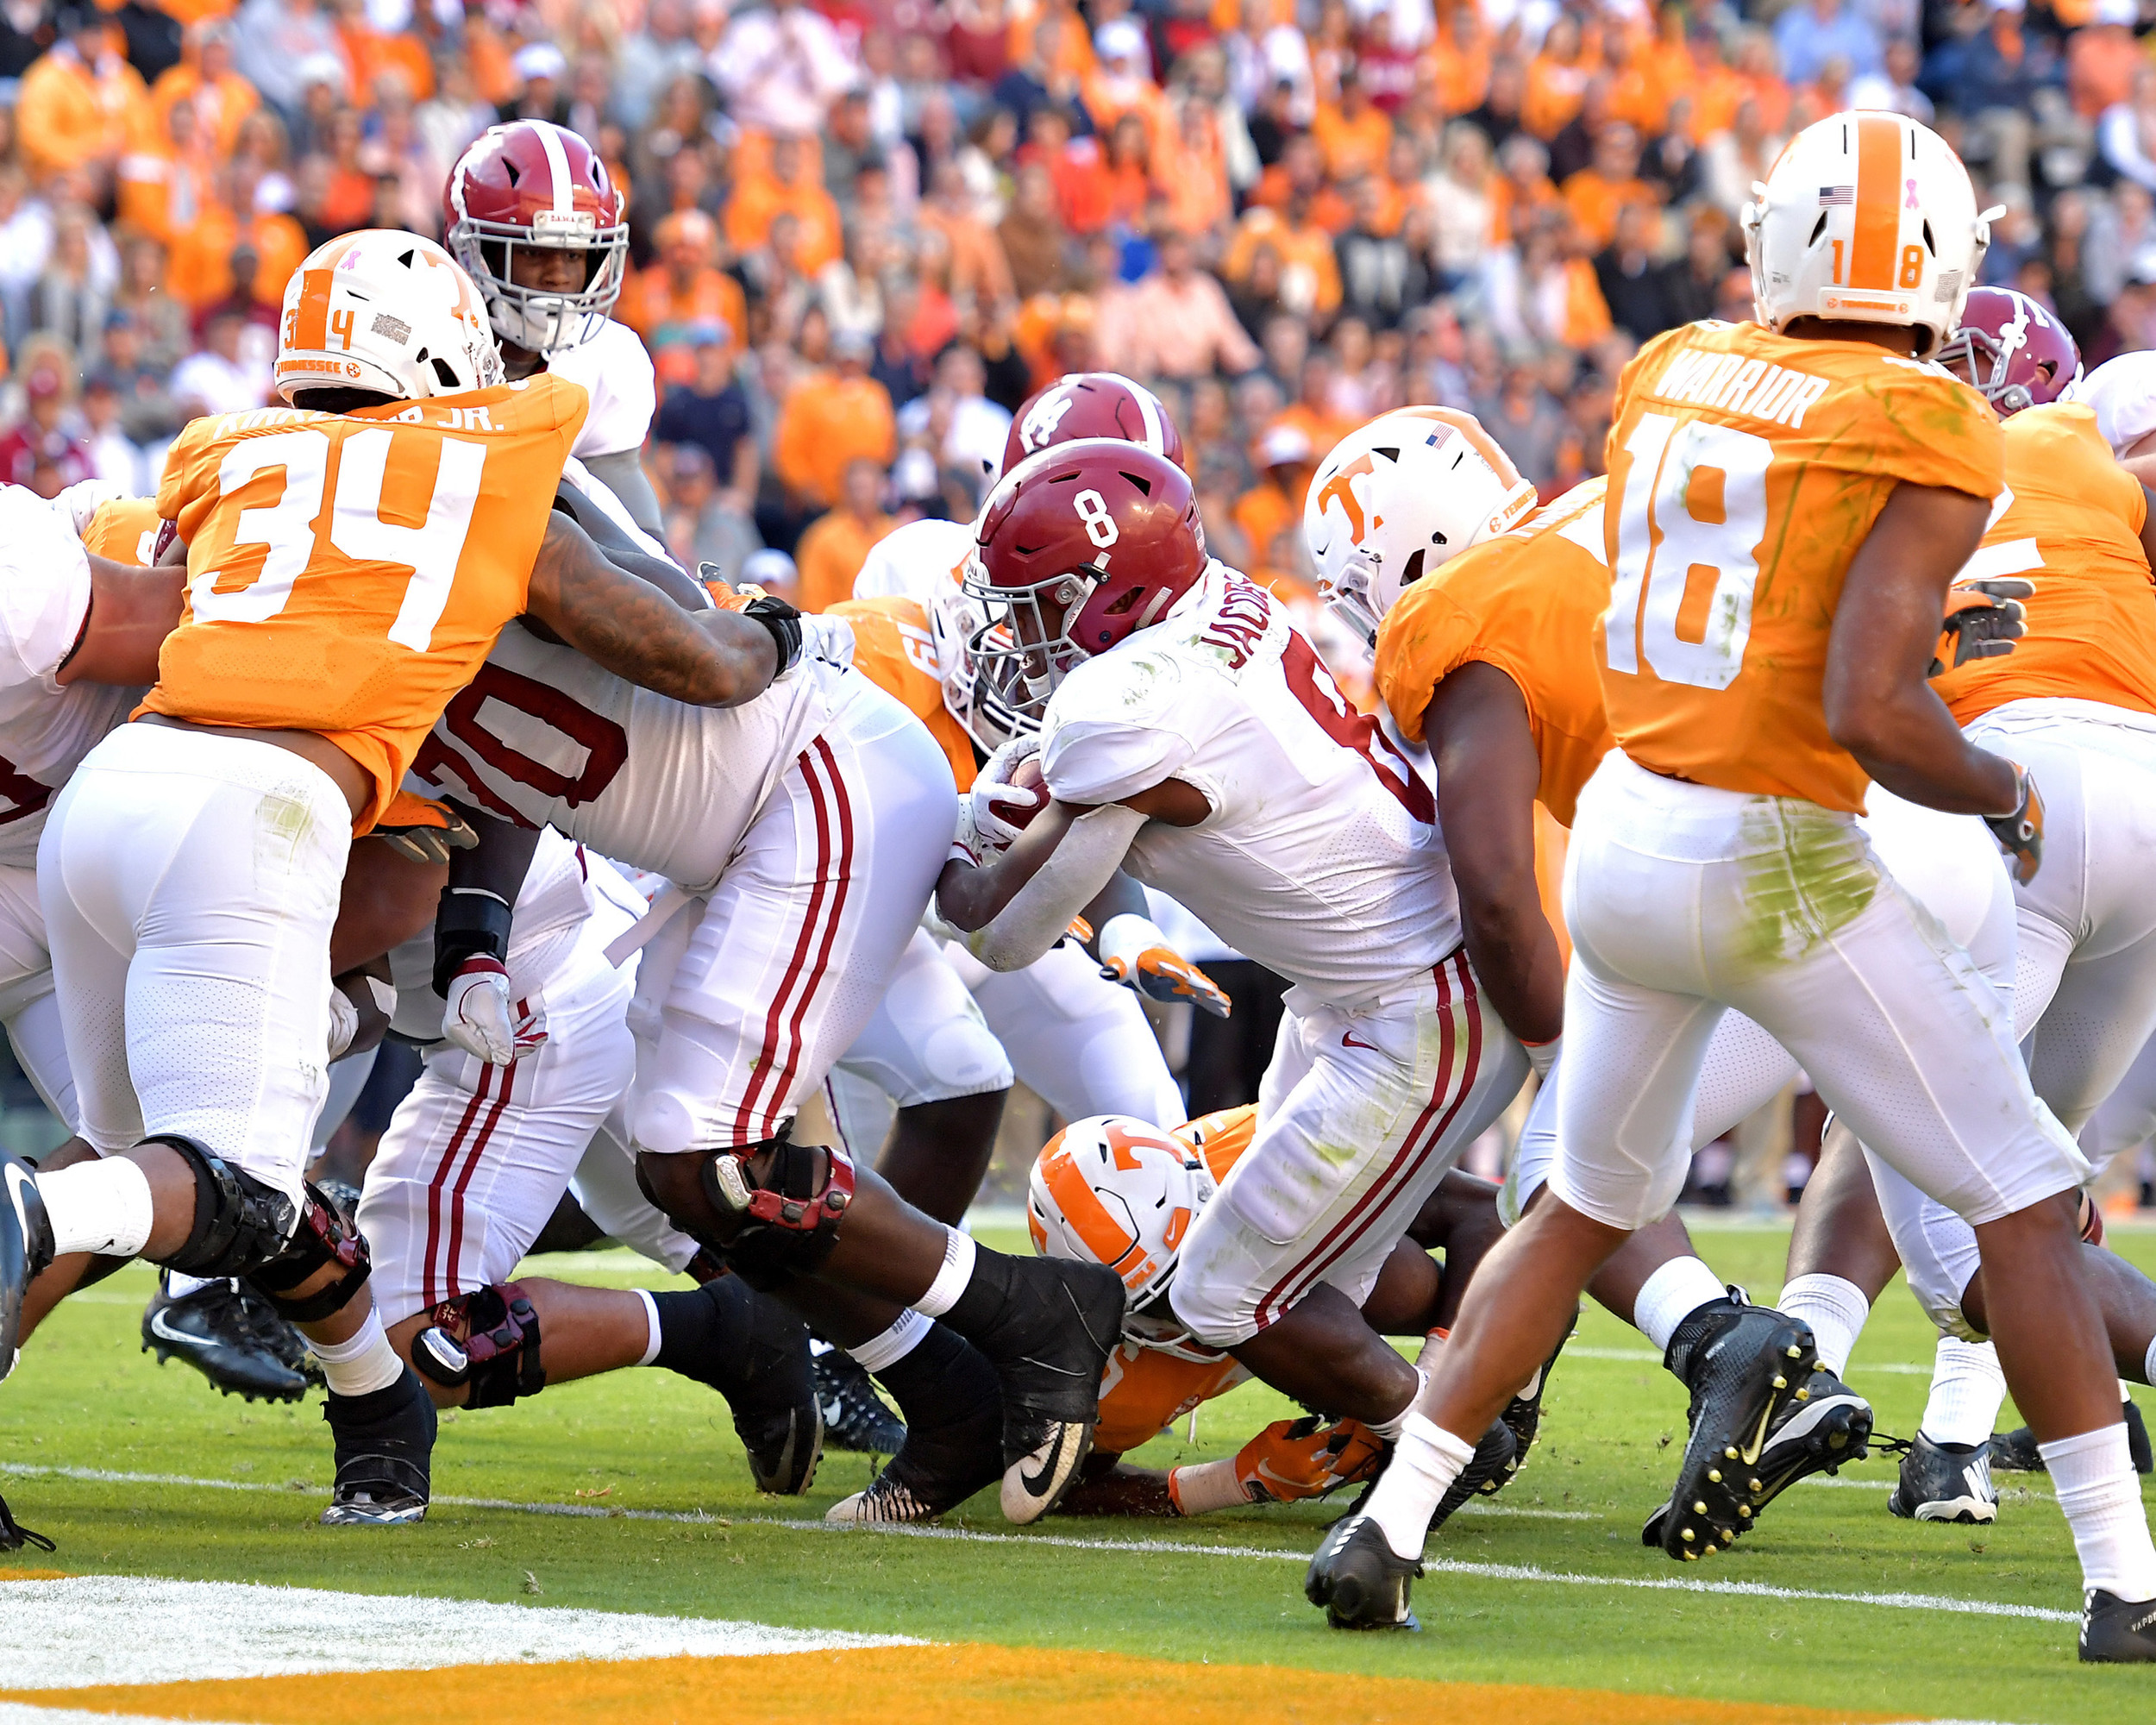 Alabama Crimson Tide running back Josh Jacobs (8) on his way to a touchdown in the second quarter of the Alabama at Tennessee NCAA football game on Saturday, Oct. 20, 2018, at Neyland Stadium in Knoxville. Tenn. Alabama wins 58-21. (Photo by Lee Walls)